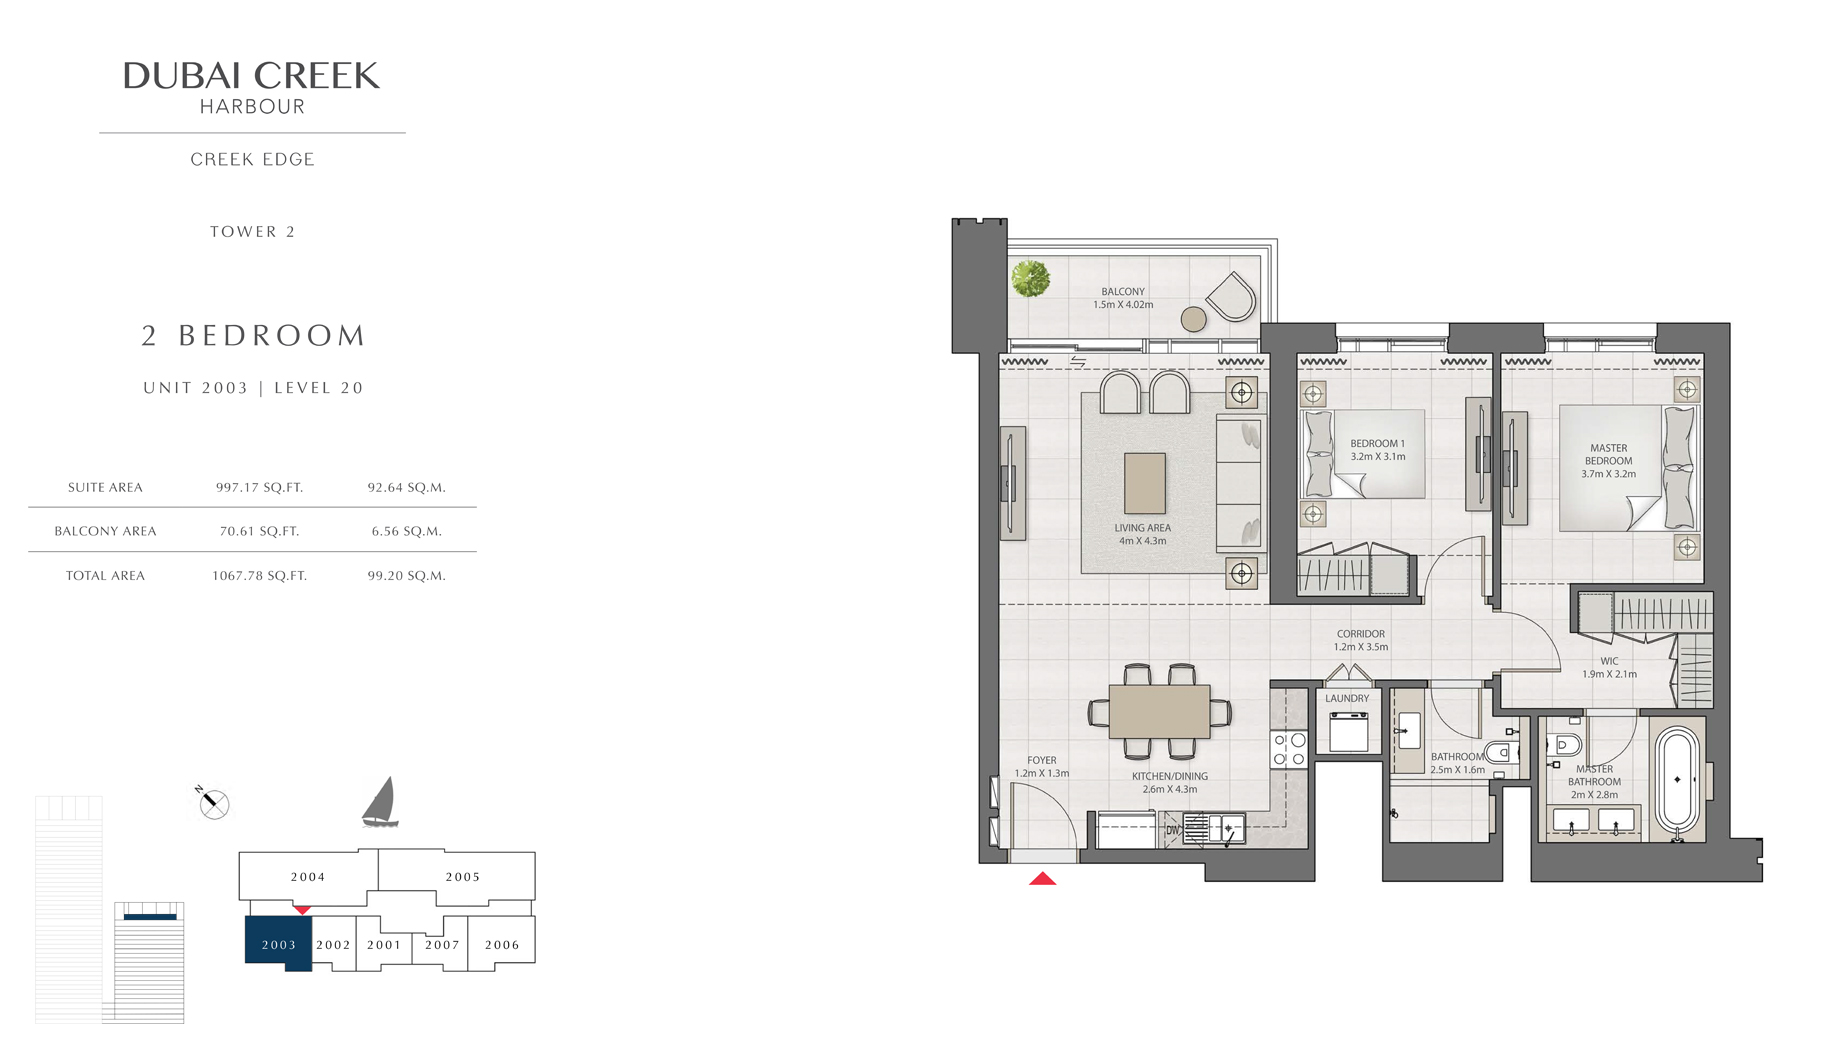 2 Bedroom Tower 2 Unit 2003 Level 20 Size 1067 sq.ft